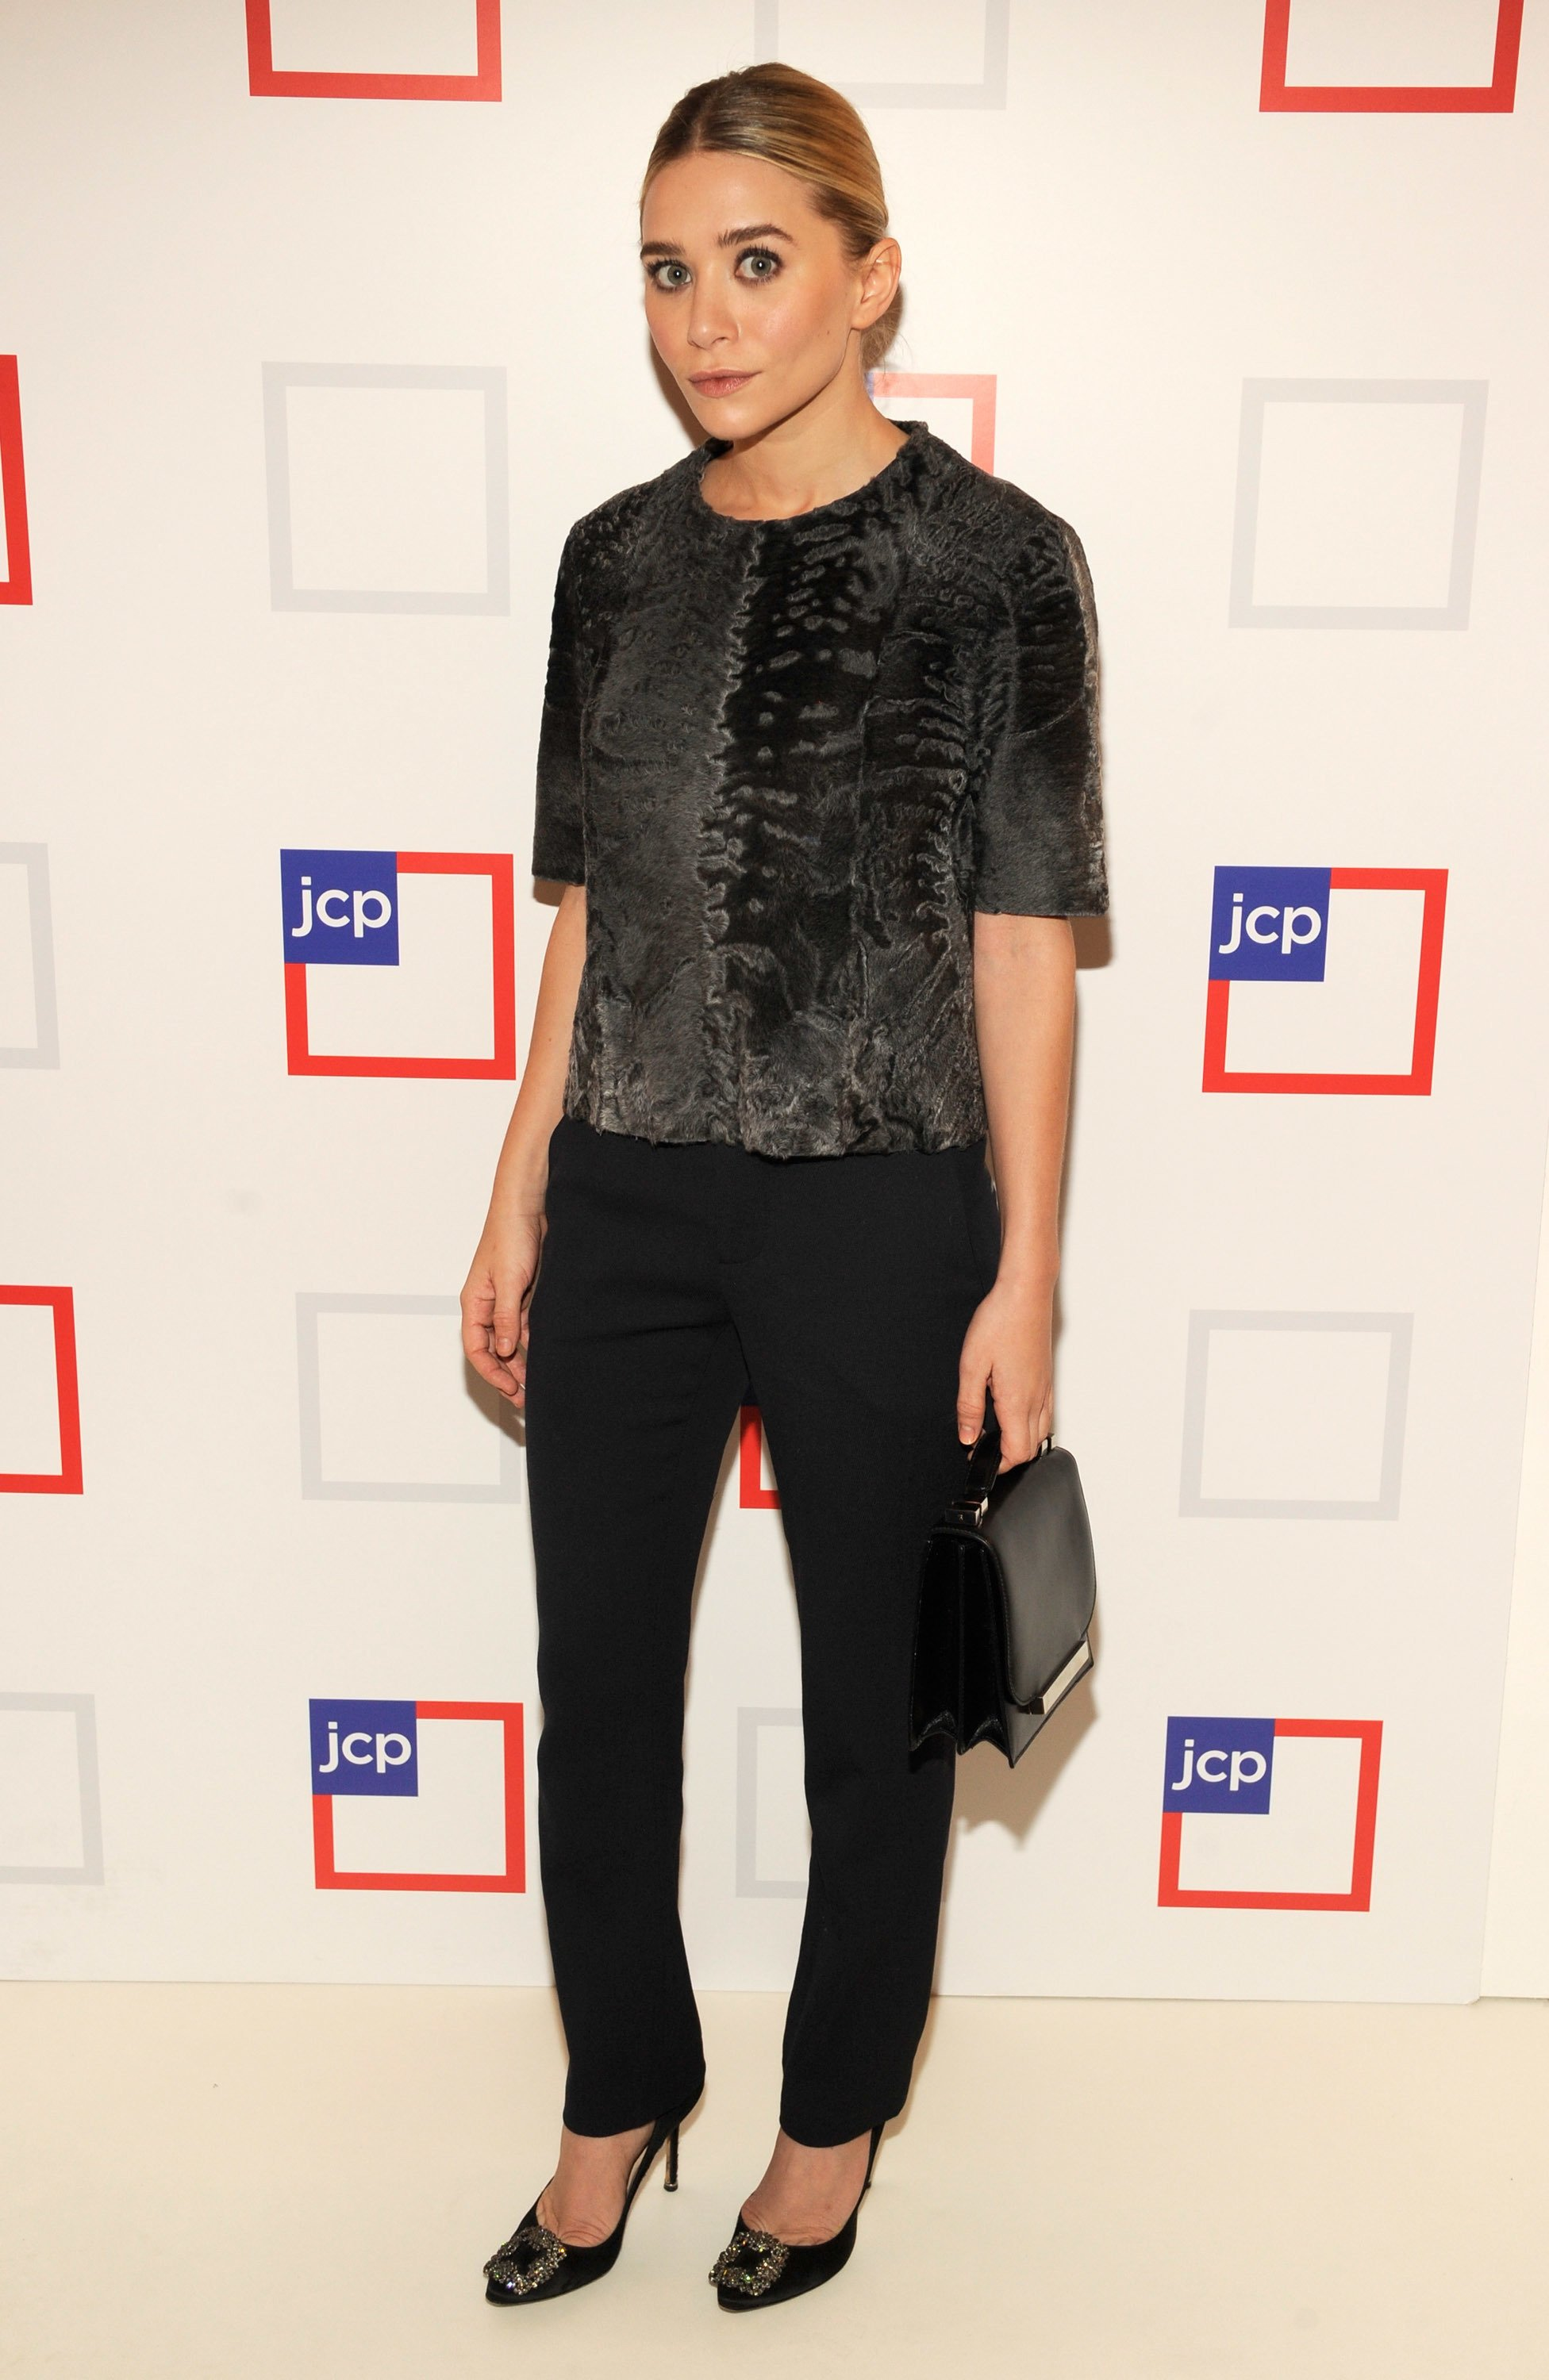 Ashley Olsen attends the jcpenney launch event at Pier 57 on January 25, 2012 in New York City. | Source: Getty Images